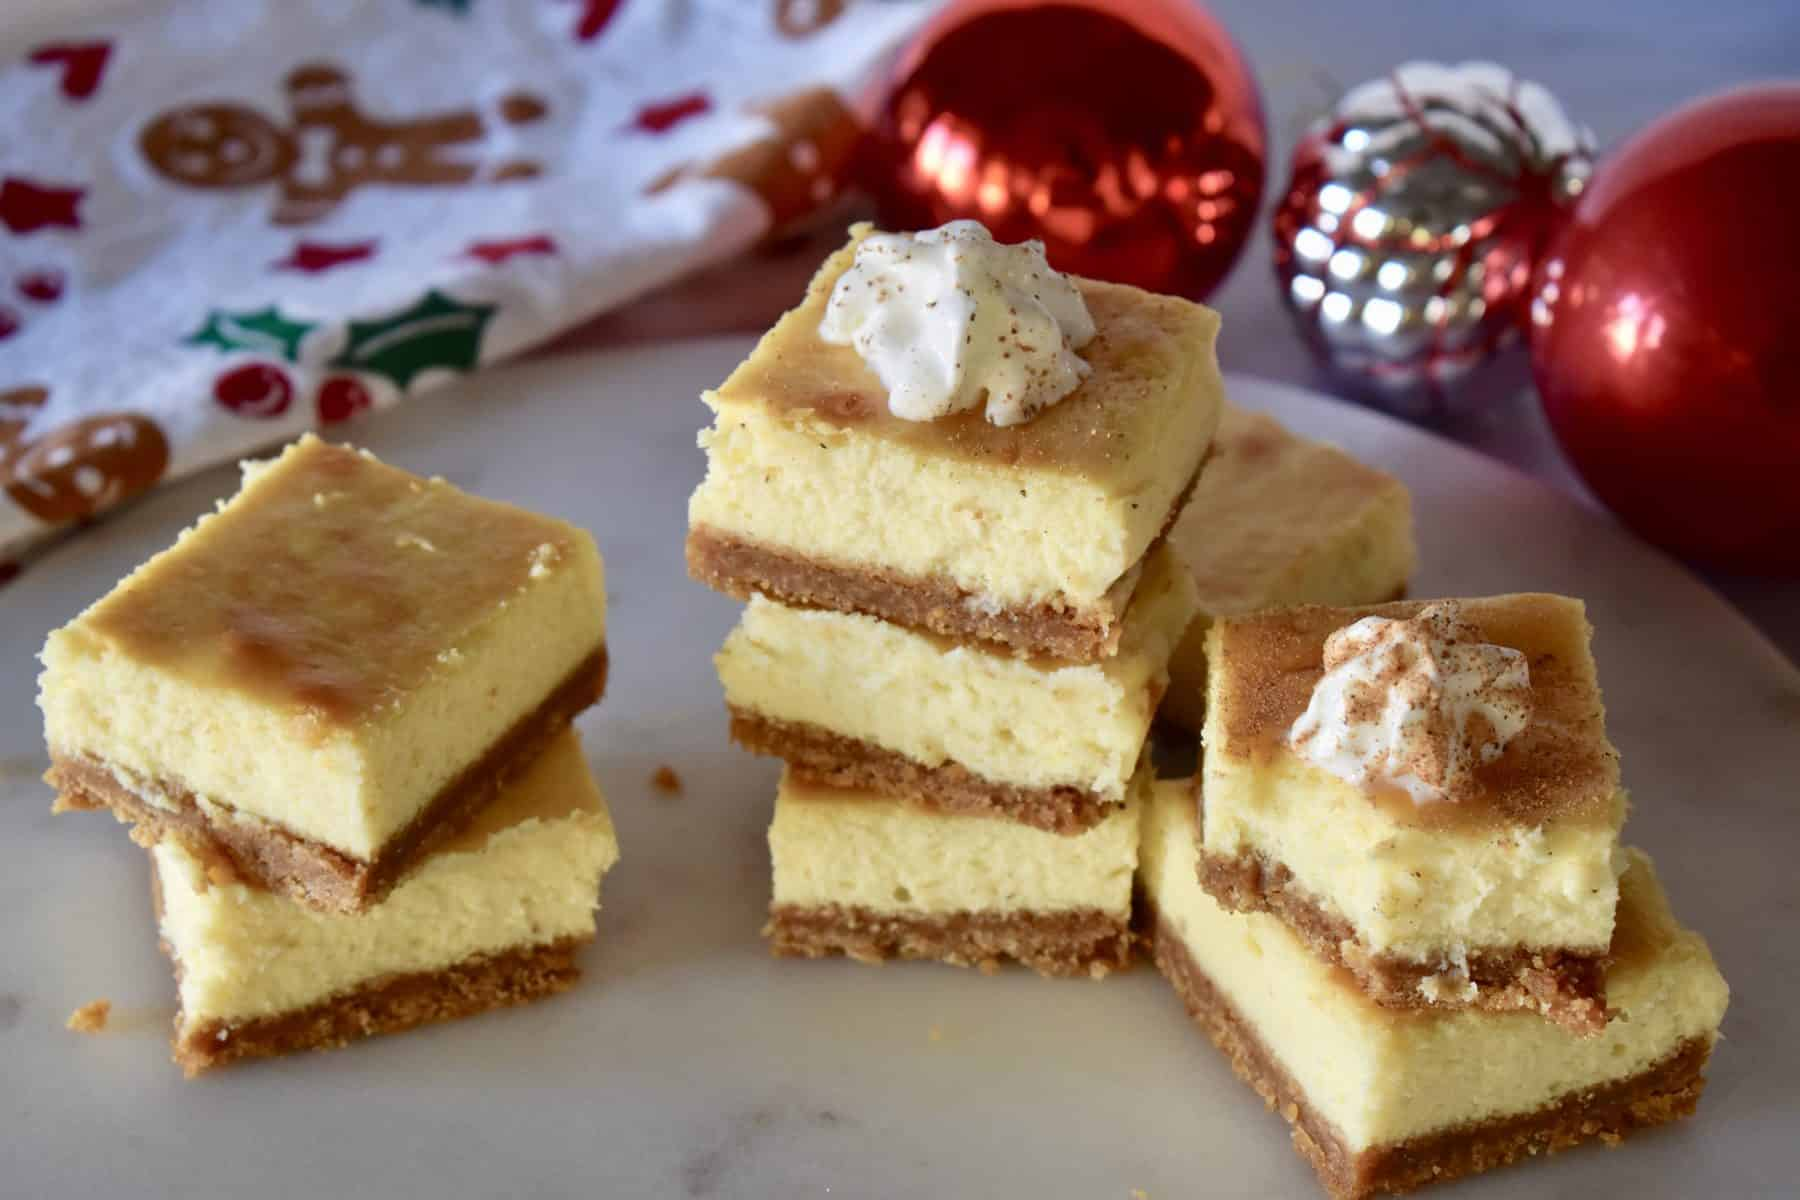 Eggnog Cheesecake Bars on a serving tray with red ornaments in the background.